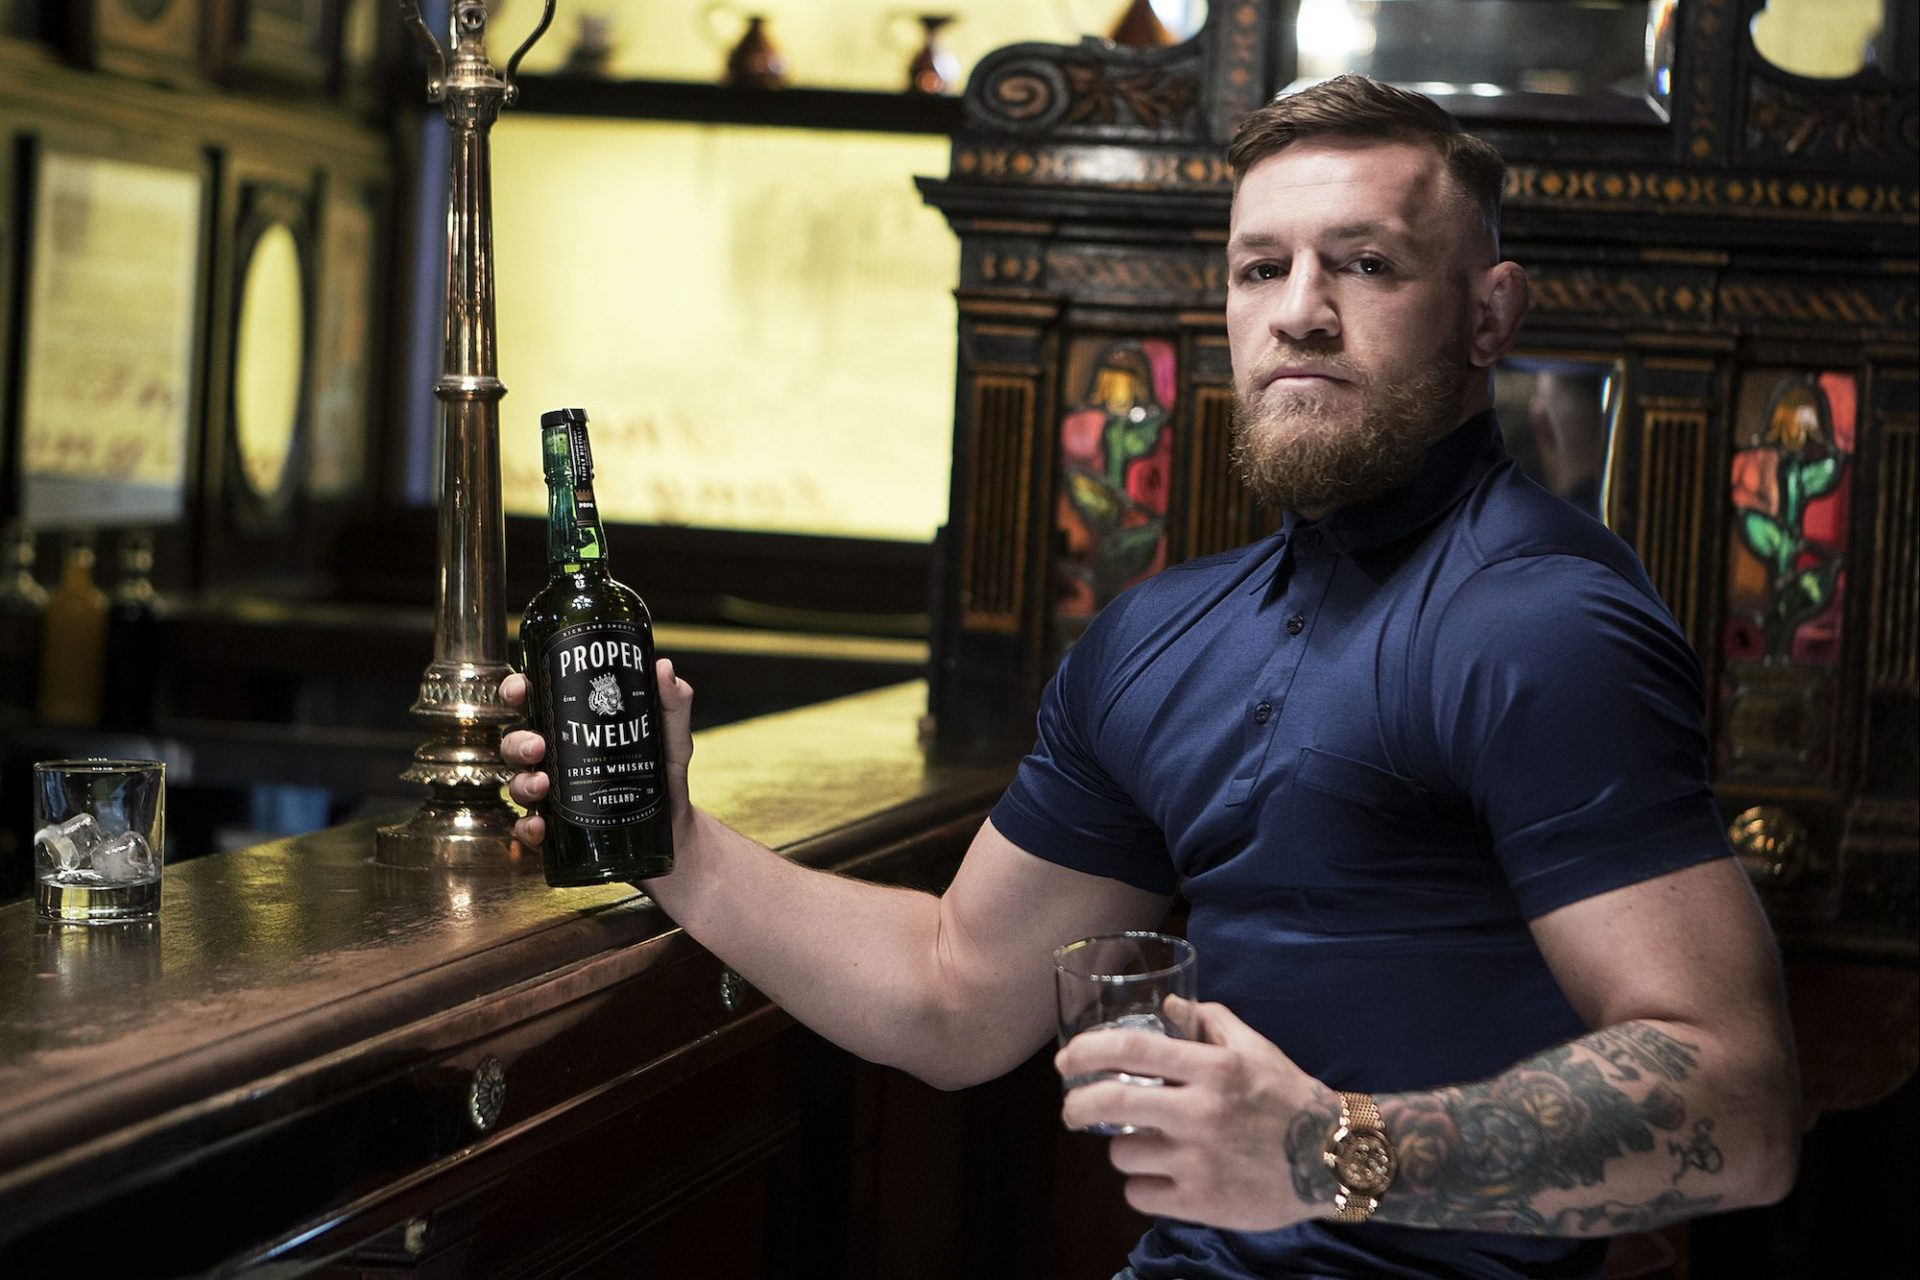 Conor McGregor doubled his net worth after selling his stake in Proper 12 - Mcgregor